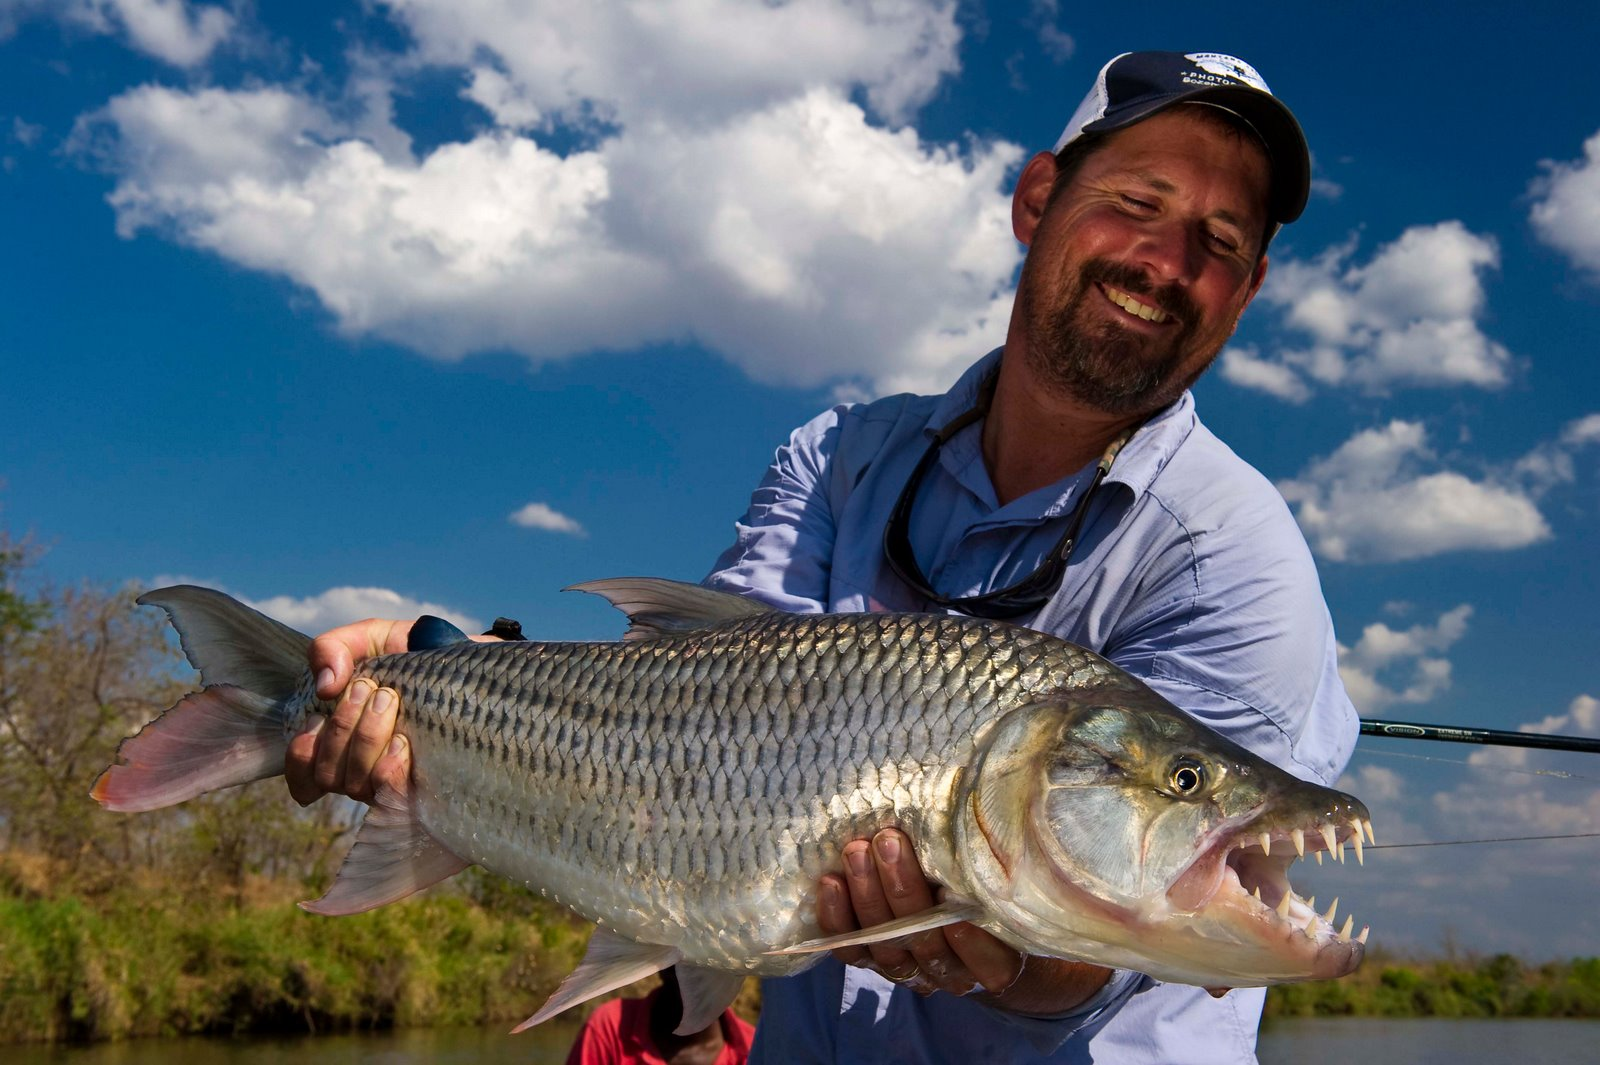 Tiger fishing is a drawcard for avid anglers